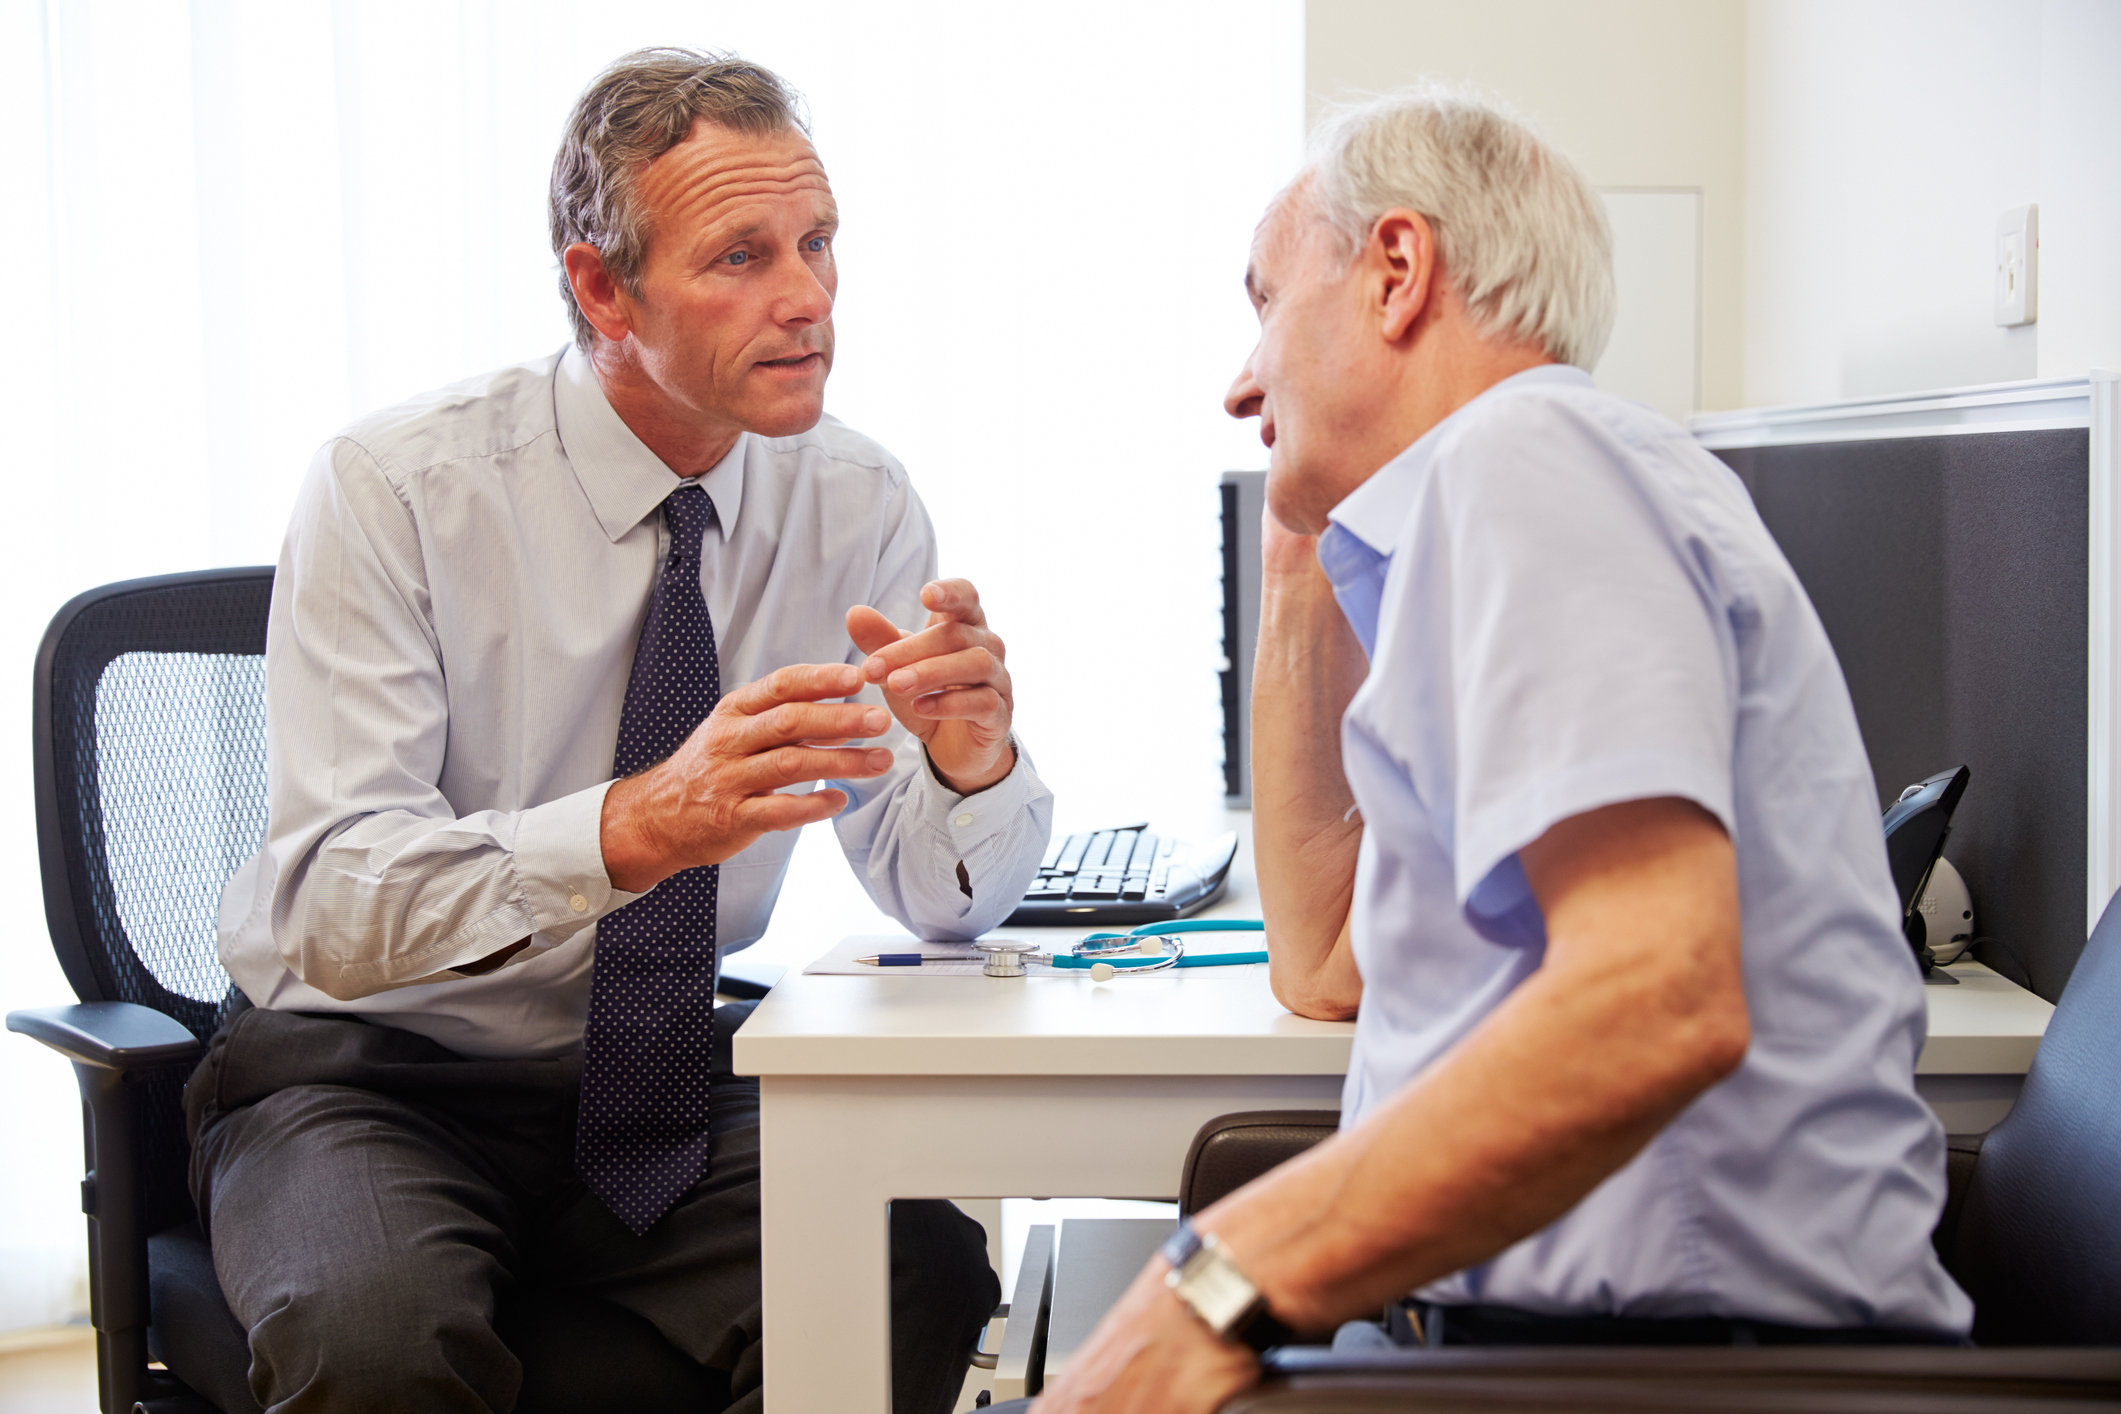 The role of communication in patient care. - If you can measure, you can manage. Ask us about our tailored communication tools to help you bring patient care to a whole new level.